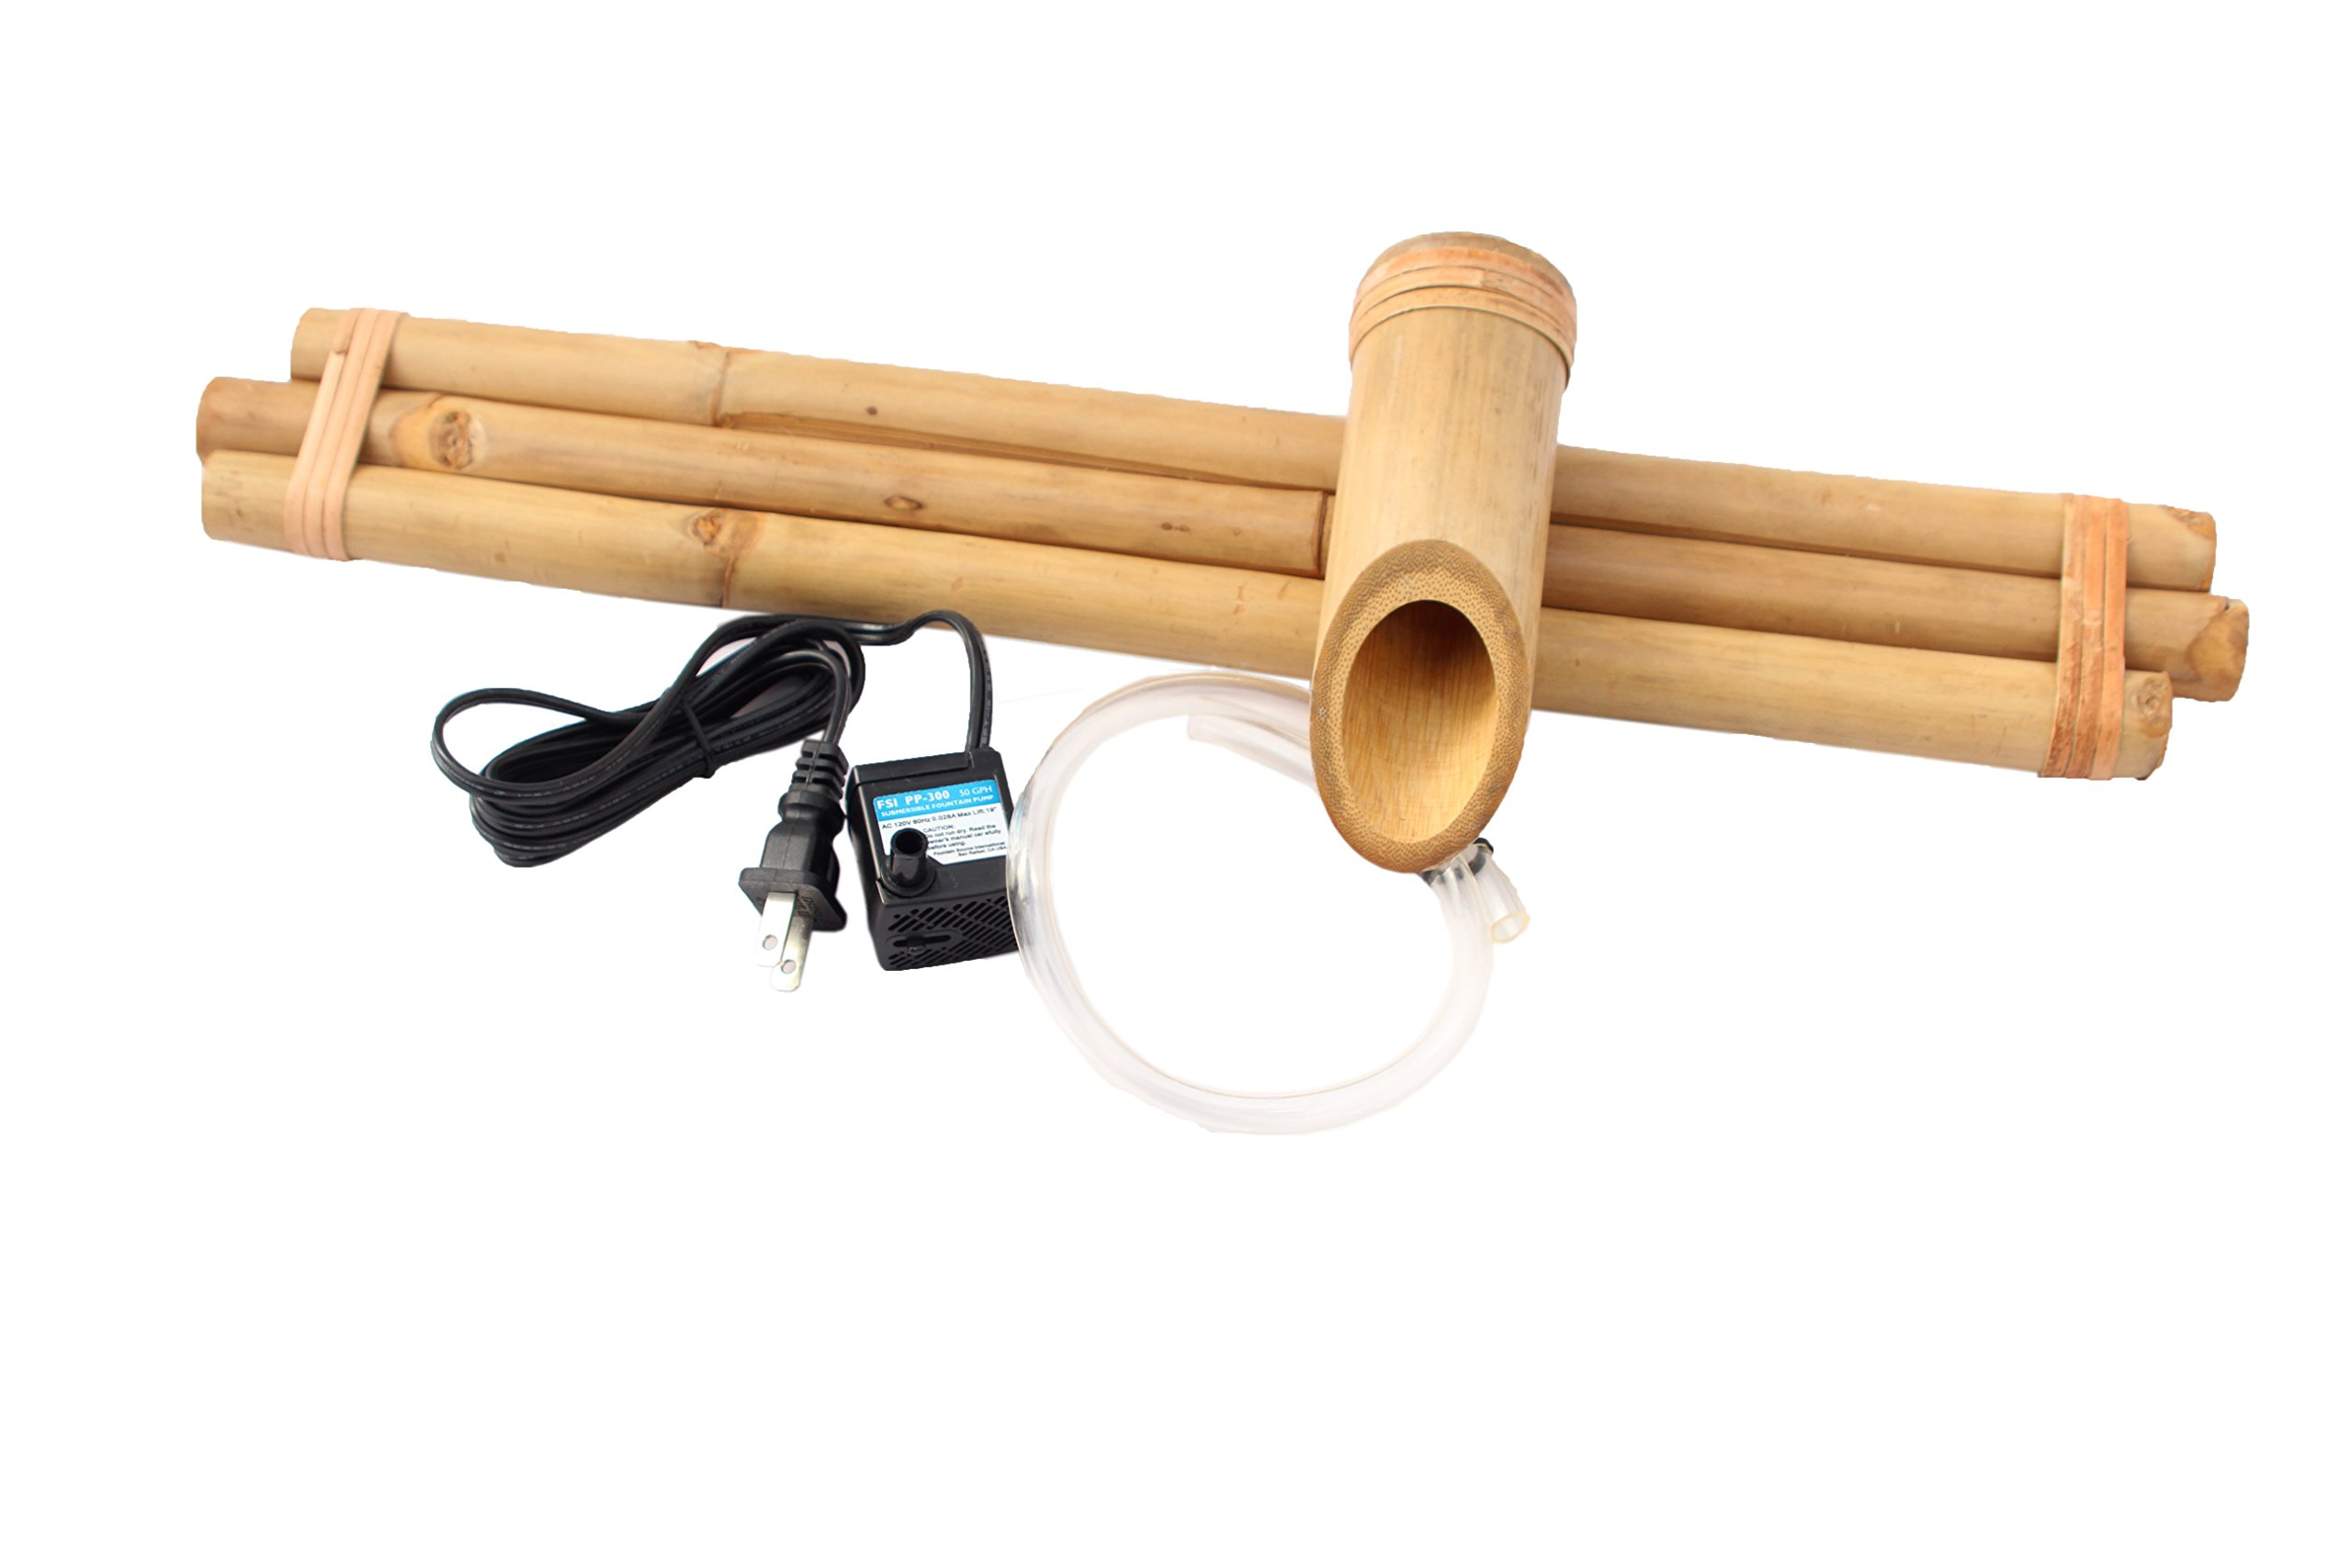 Bamboo Fountain with Pump Large 18 Inch Three Arm Style, Indoor or Outdoor Fountain, Natural, Split Resistant Bamboo, Combine with Any Container to Create Your Own Fountain, Handmade